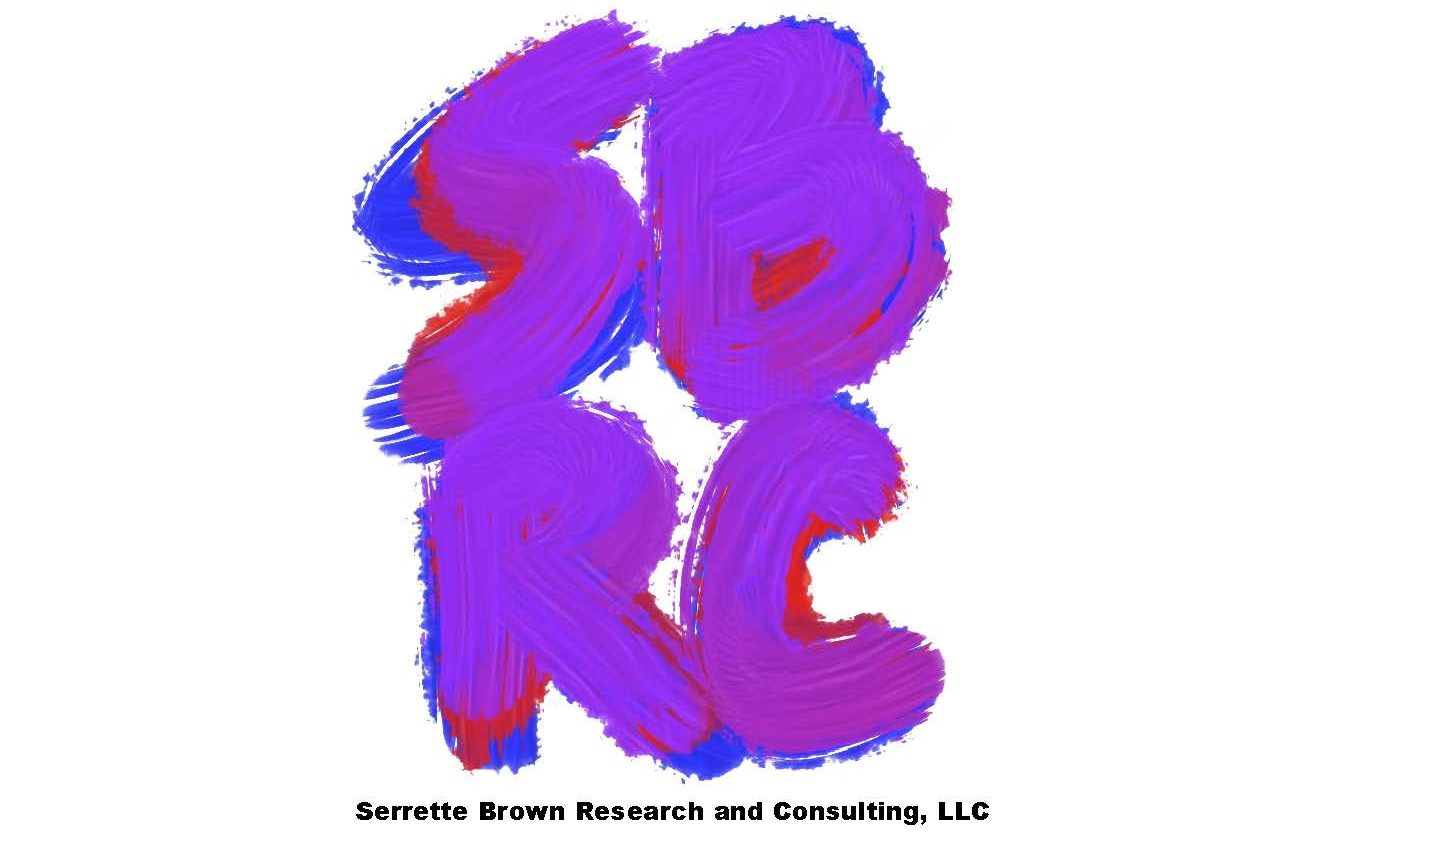 Serrette Brown Research and Consulting, LLC